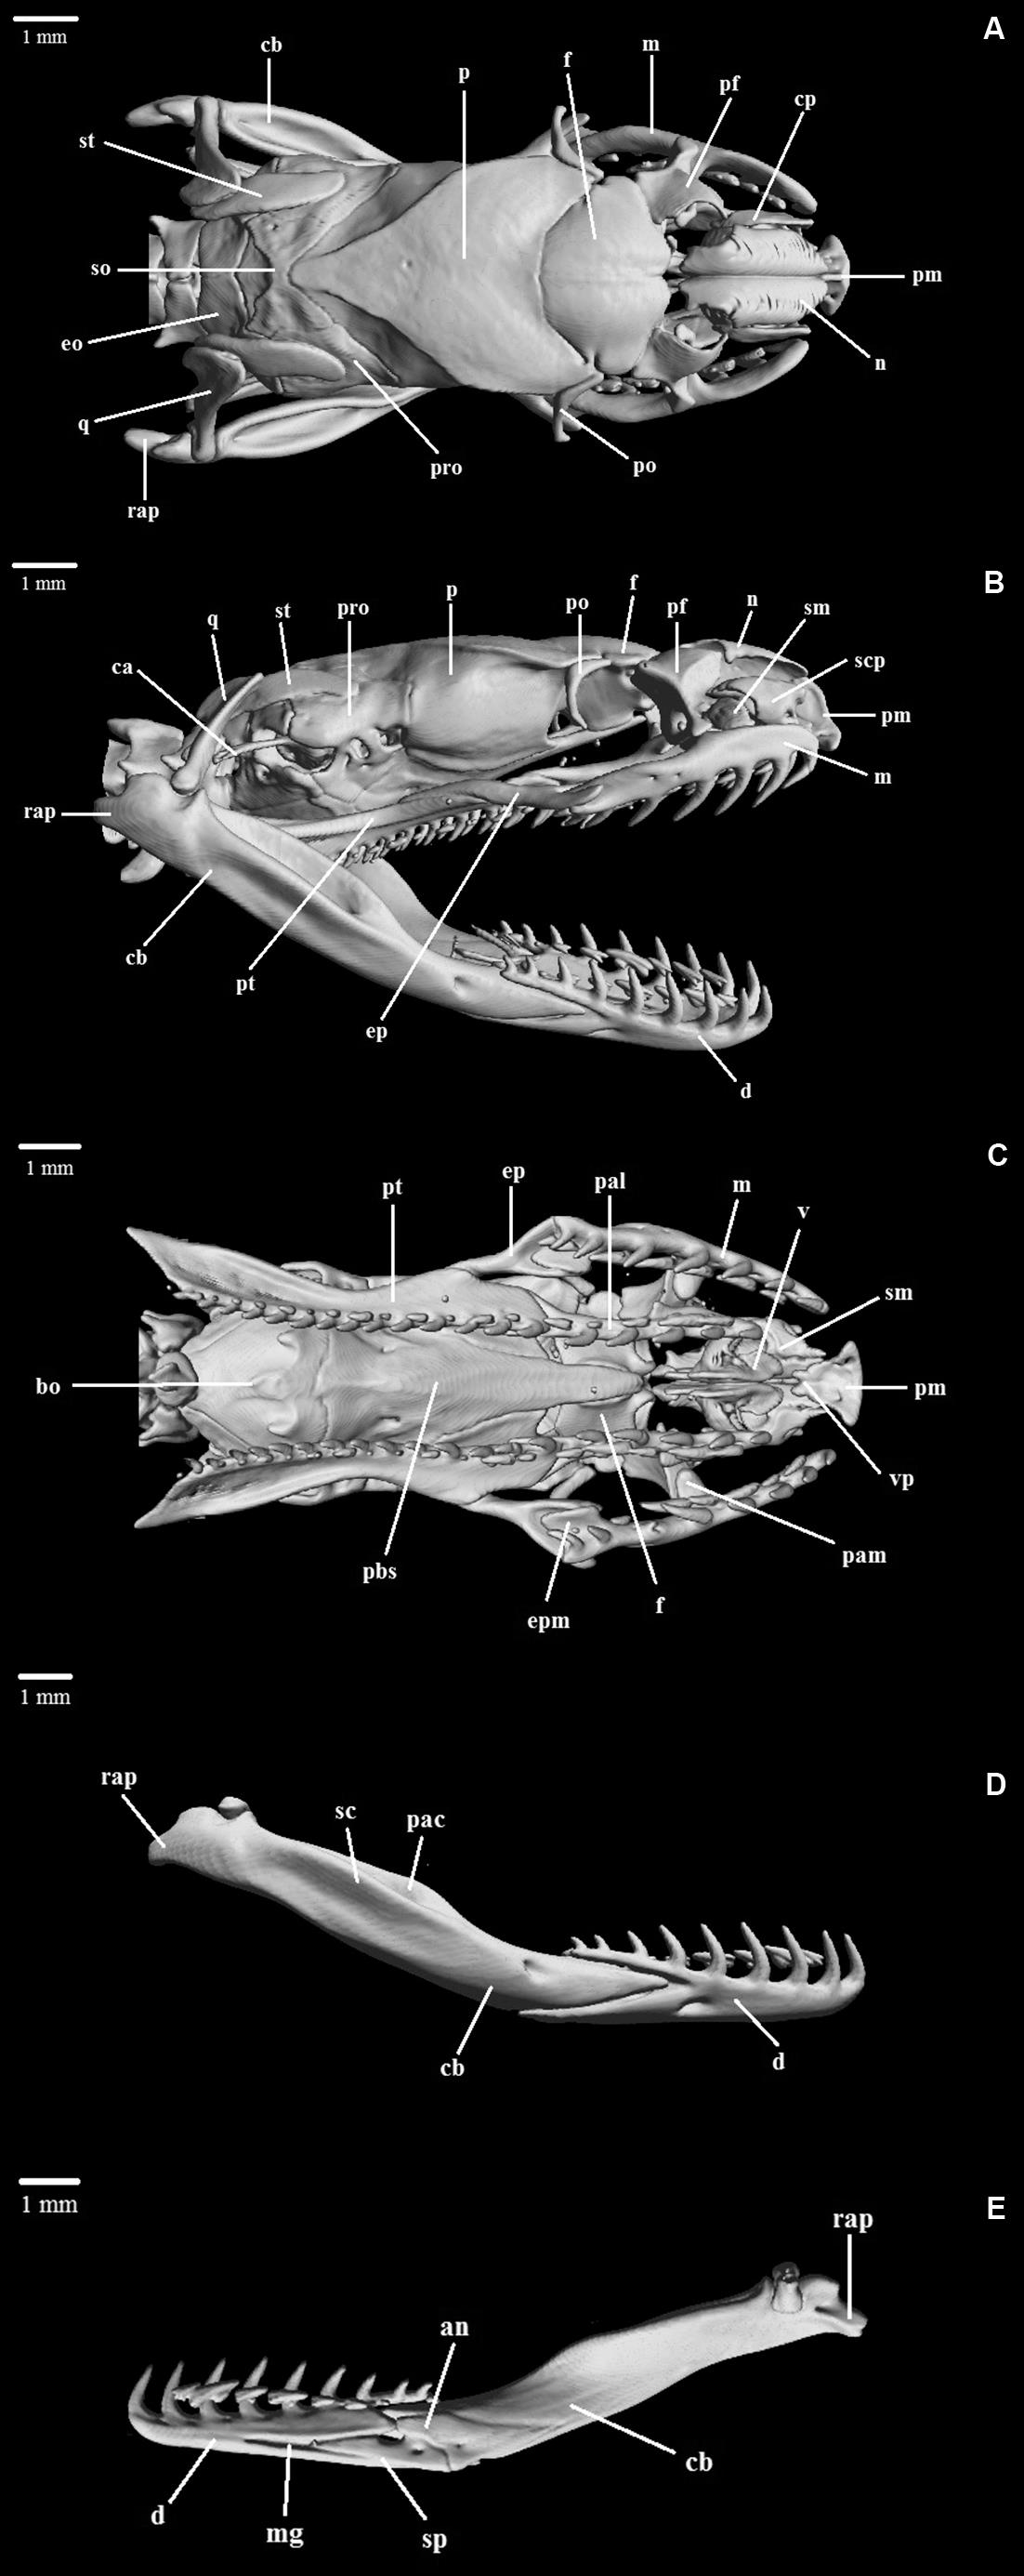 Decoration Marine Nationale Taxonomy Morphology And Distribution Of Atractus Flammigerus